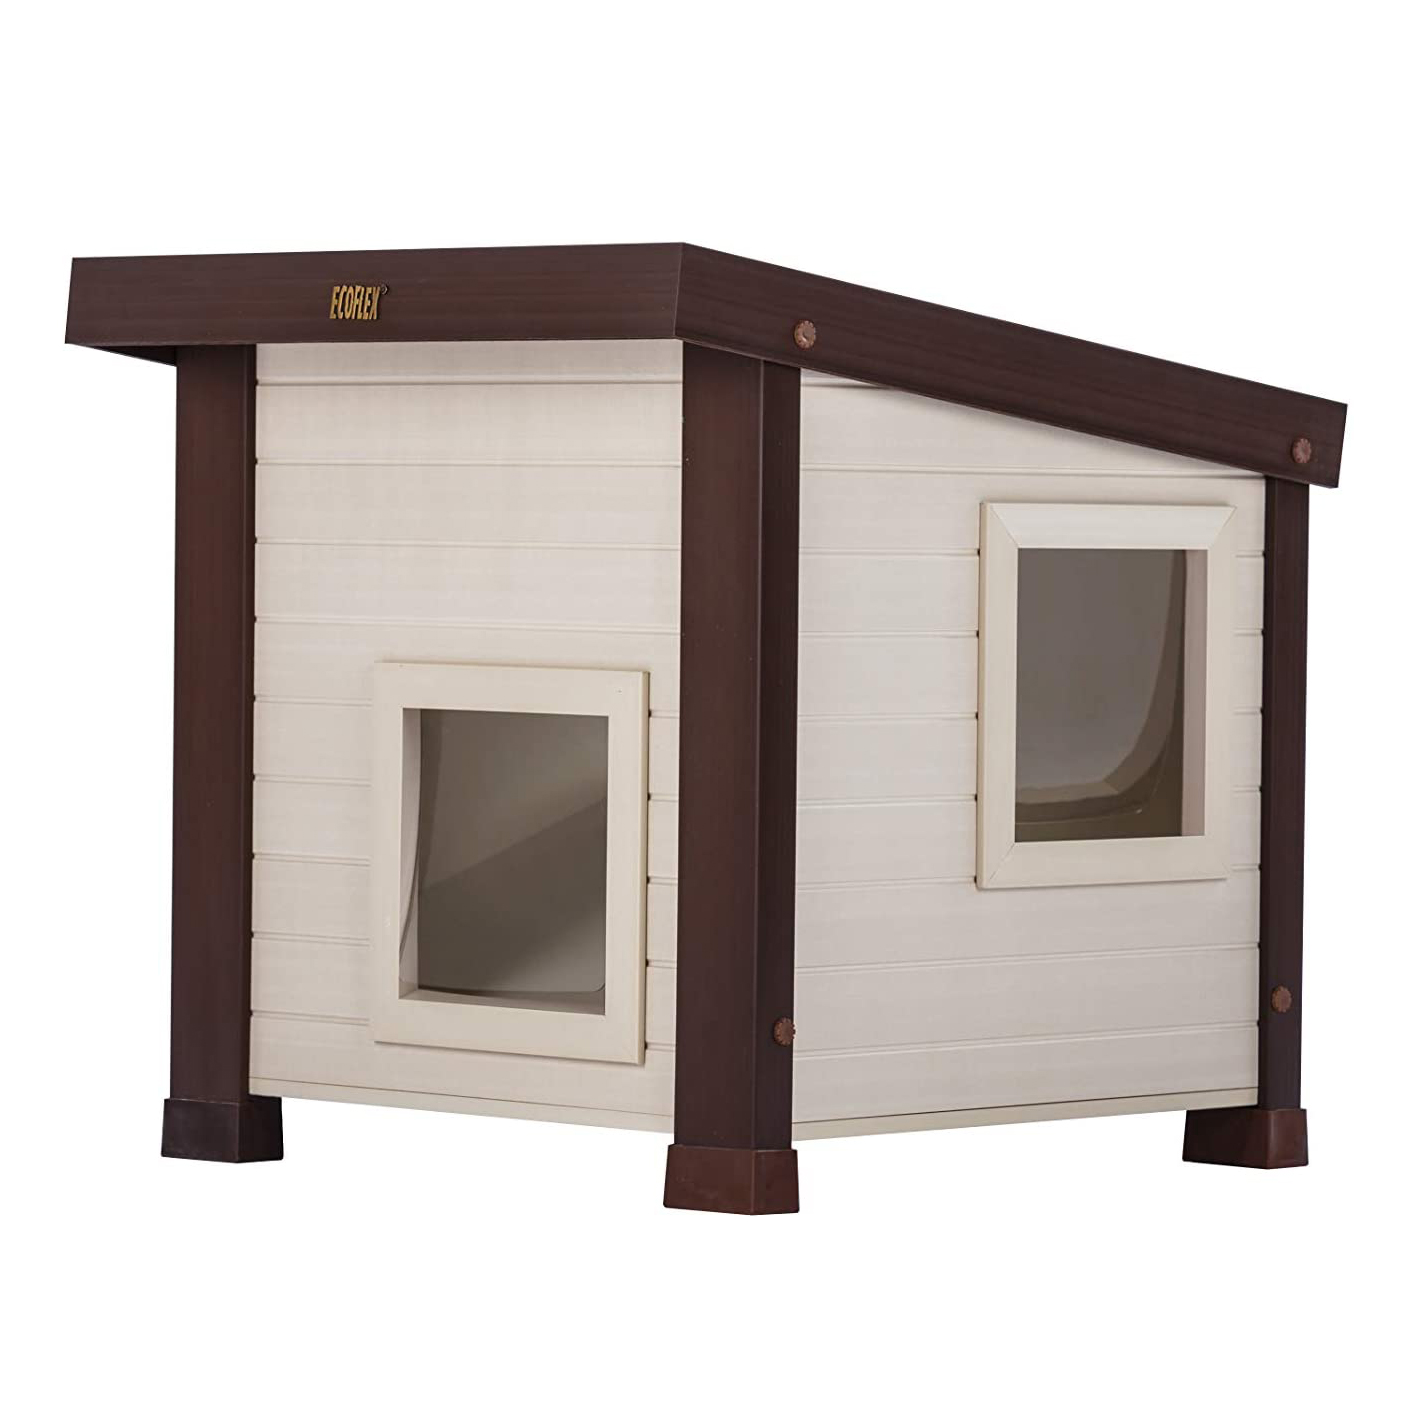 ecoflex-albany-outdoor-feral-cat-house